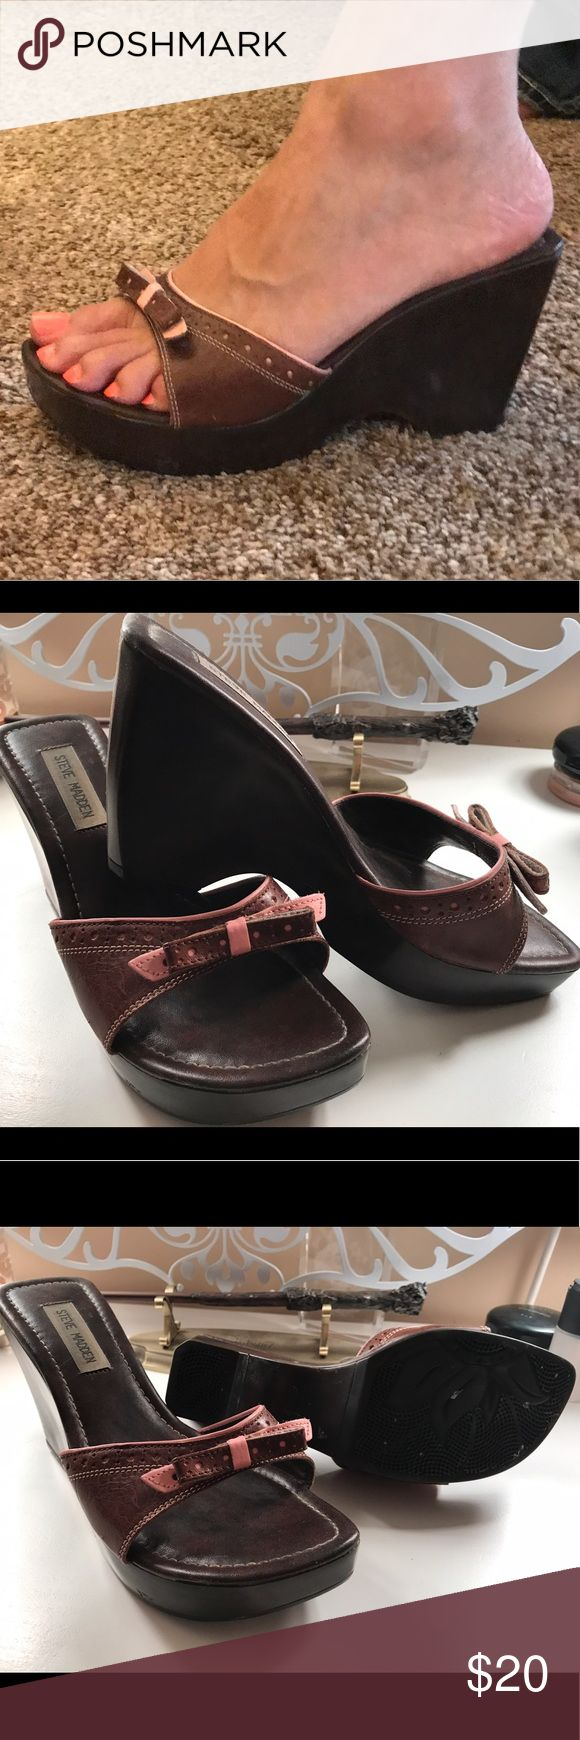 Steve Madden wedges Steve Madden wedges Steve Madden Shoes Wedges